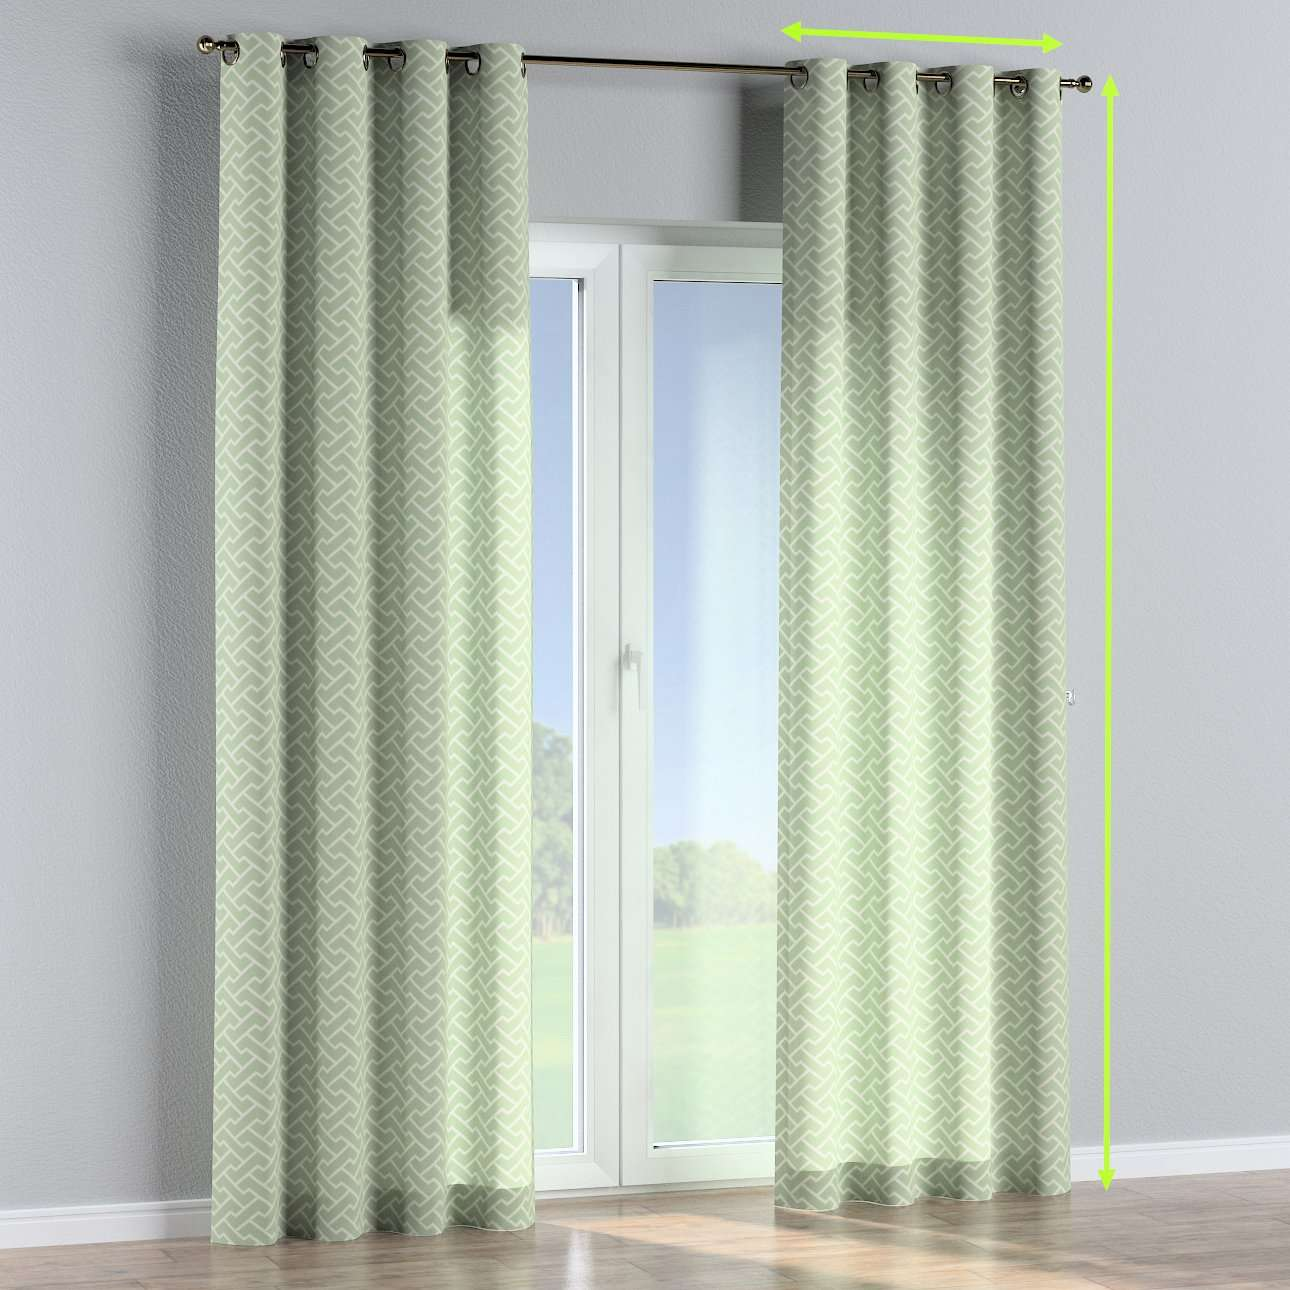 Eyelet curtains in collection Comic Book & Geo Prints, fabric: 141-63